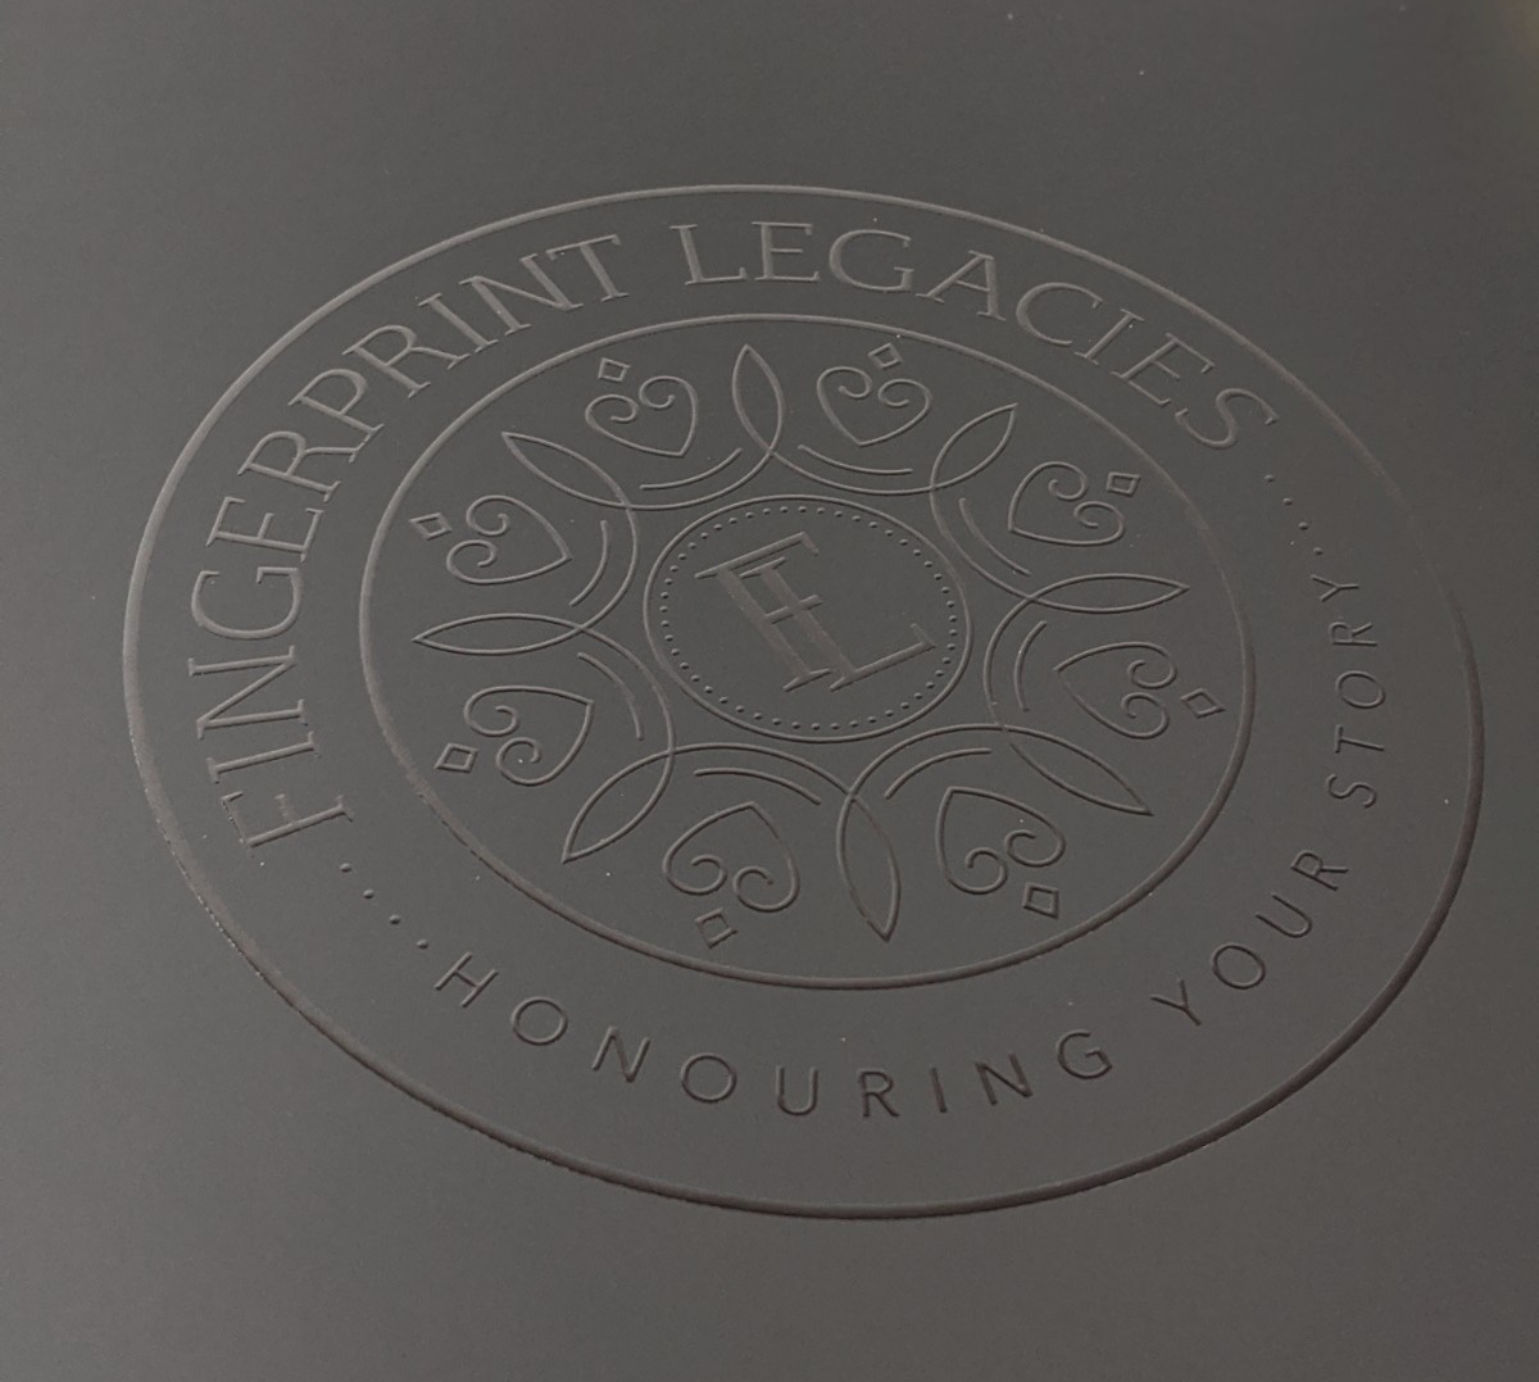 Fingerprint Legacies logo